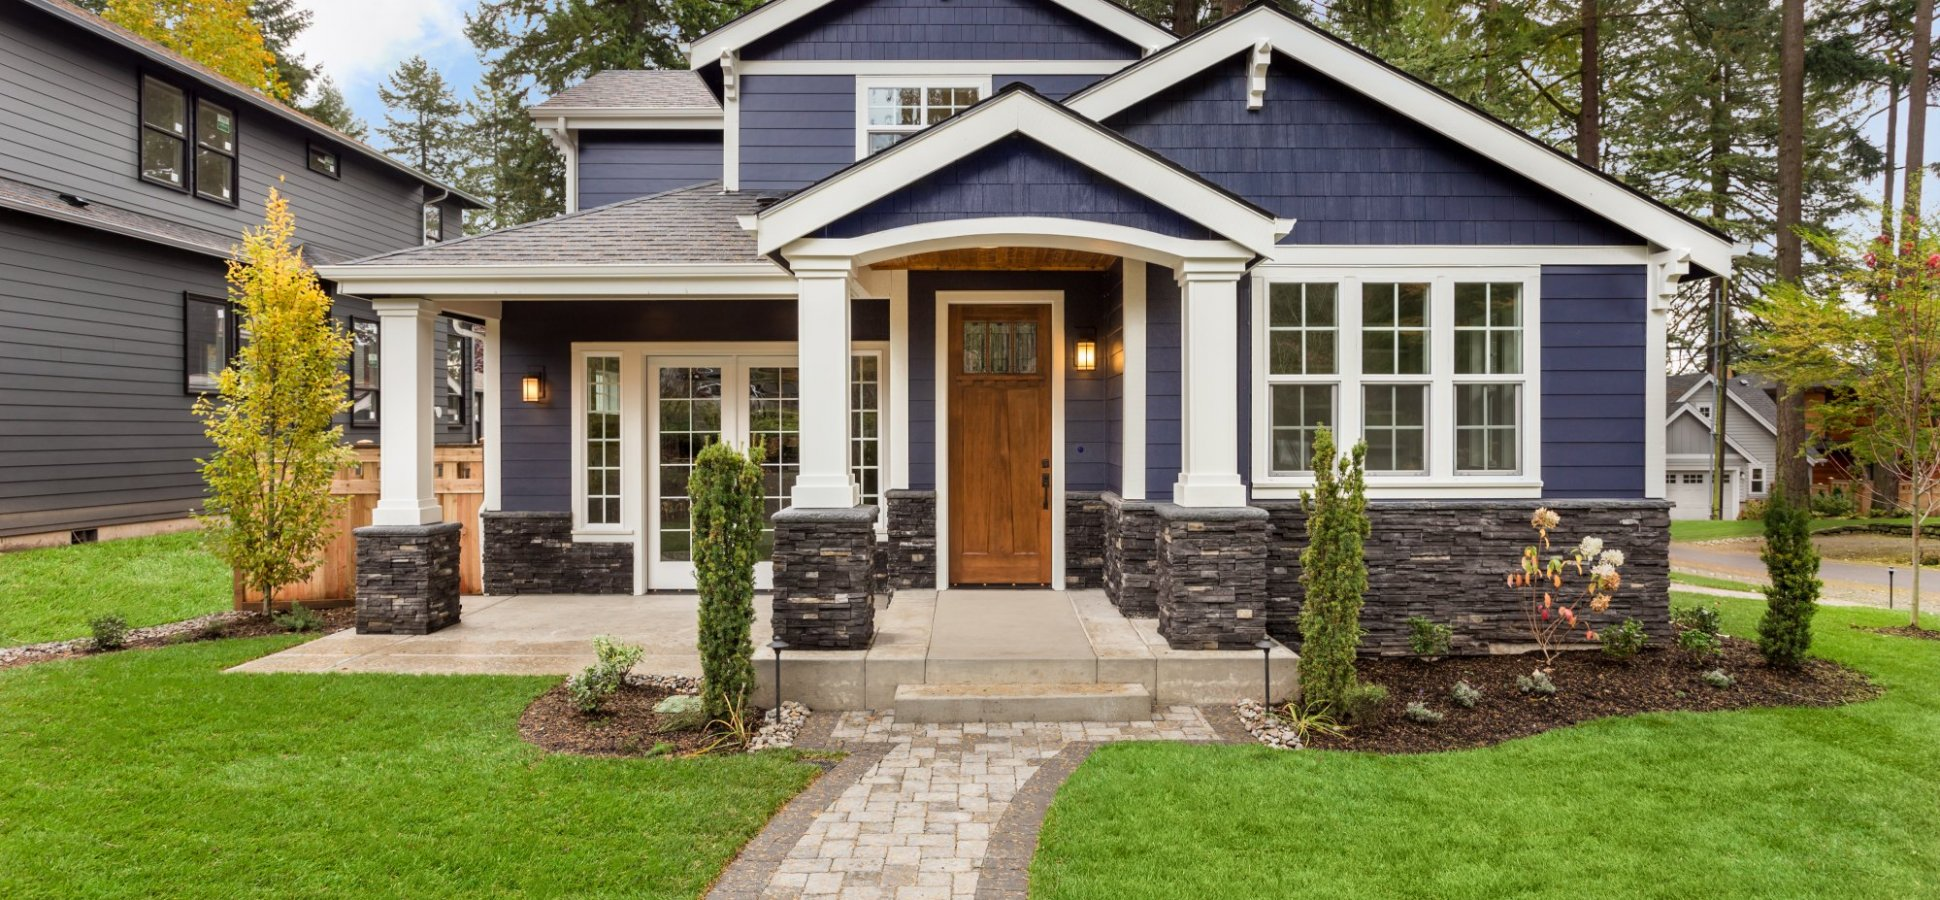 Buying a New House? Beware of This Sneaky Trick Some Agents Are Using. (It Makes Listings Look Much Better Than They Really Are) | Inc.com